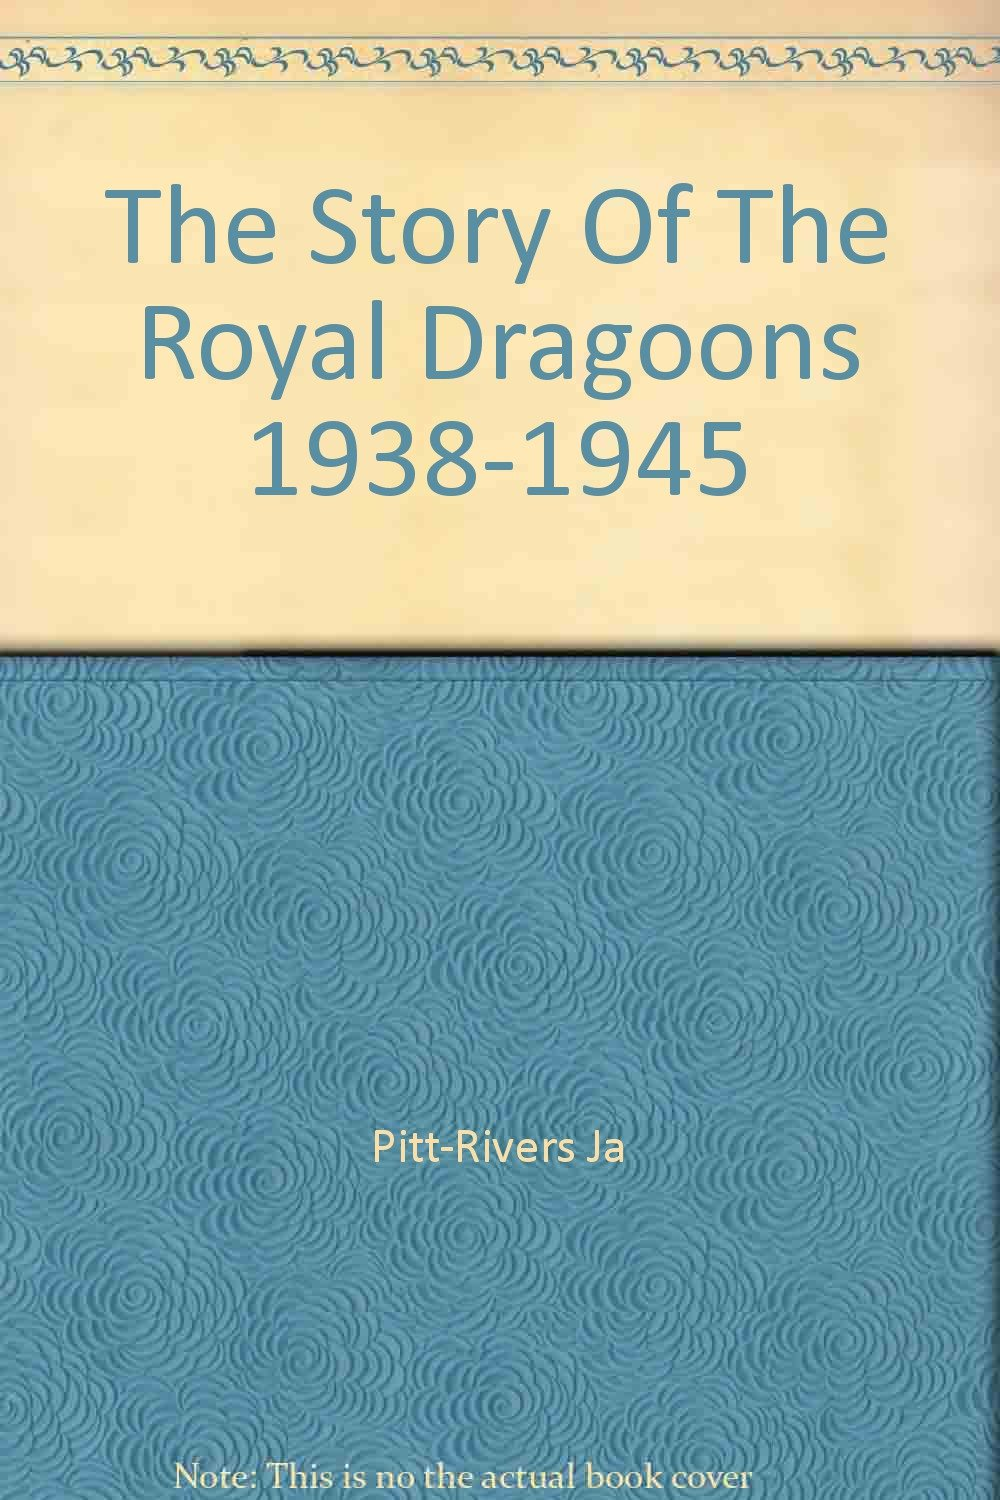 The story of the Royal Dragoons, 1938-1945;: Being the history of the Royal Dragoons in the campaigns of North Africa, the Middle East, Italy and North-West Europe